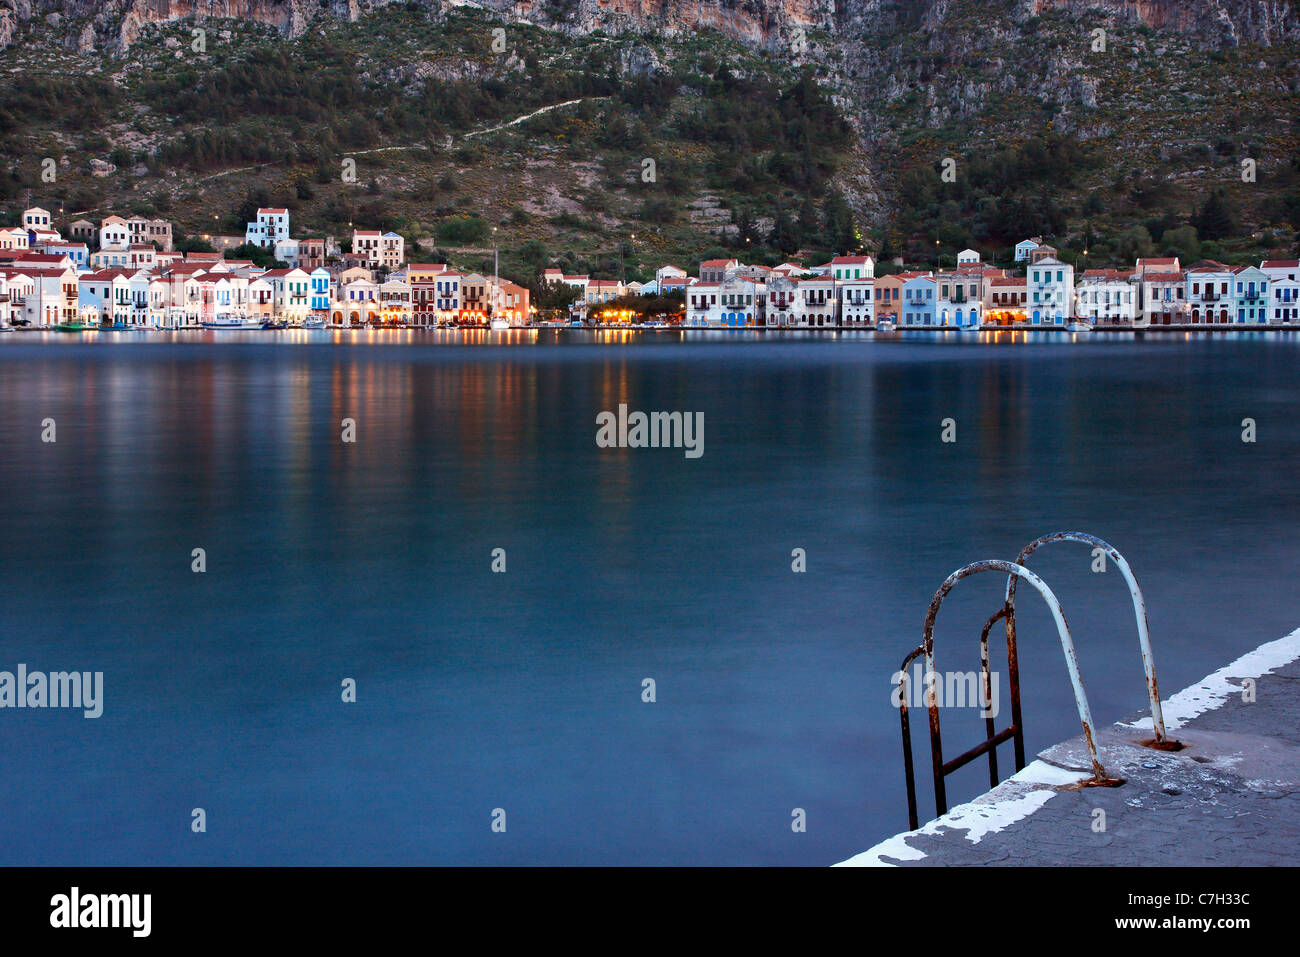 A ladder for swimmers in the picturesque harbor of Kastellorizo island, Dodecanese, Greece. (long exposure shot) - Stock Image